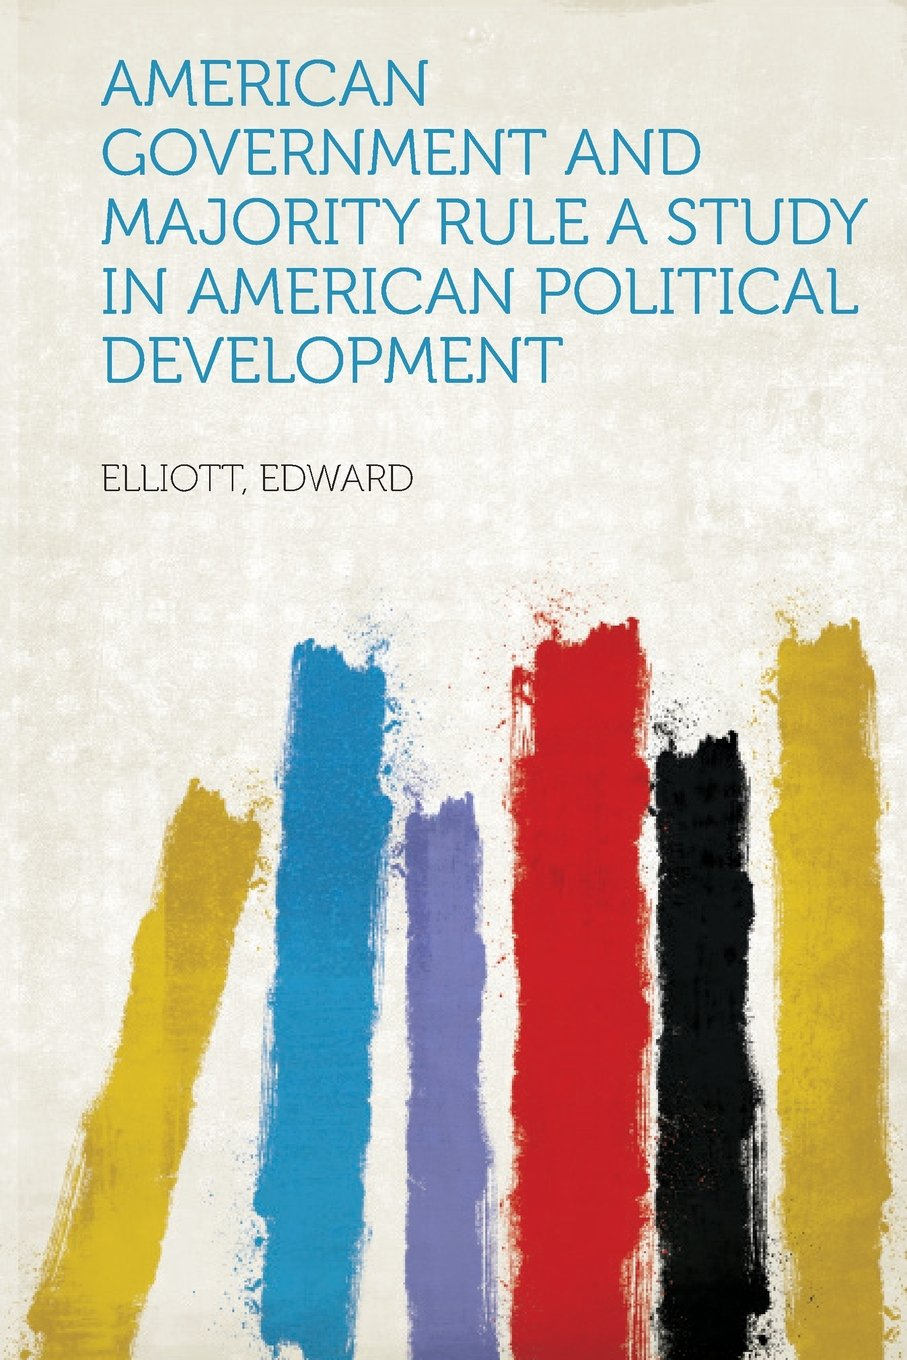 American Government and Majority Rule a Study in American Political Development